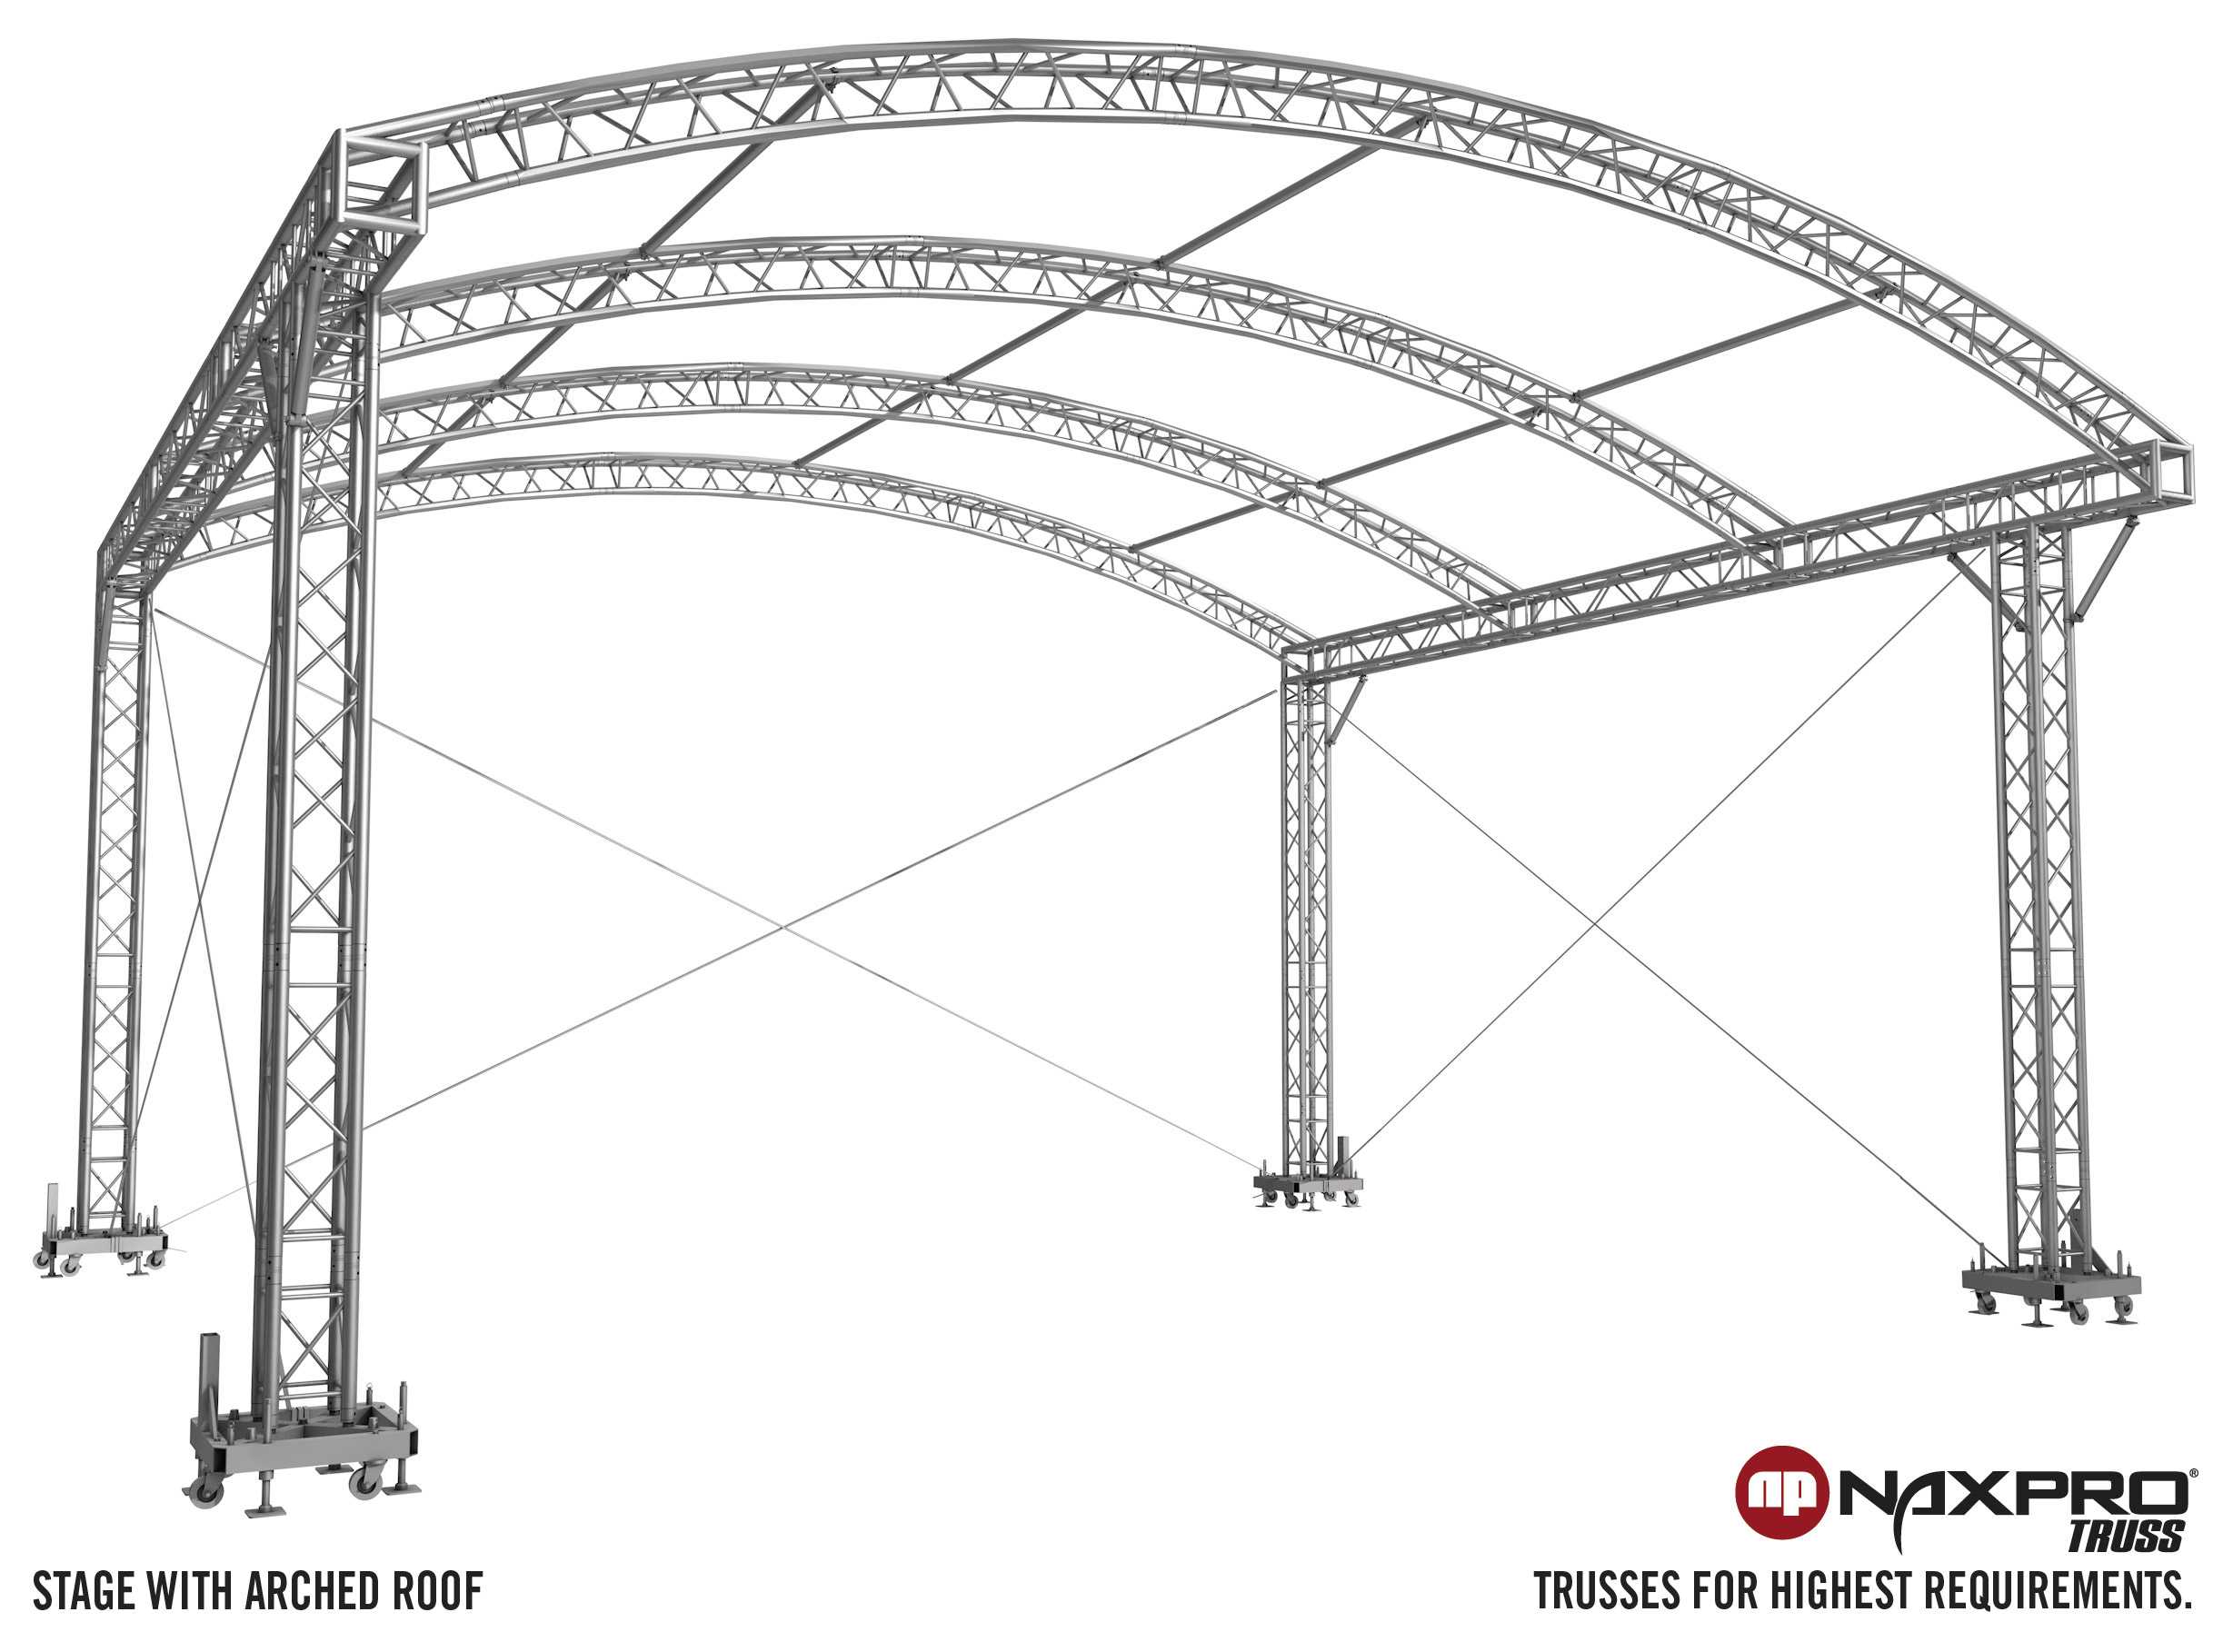 Stages With Arched Roof Naxpro Truss